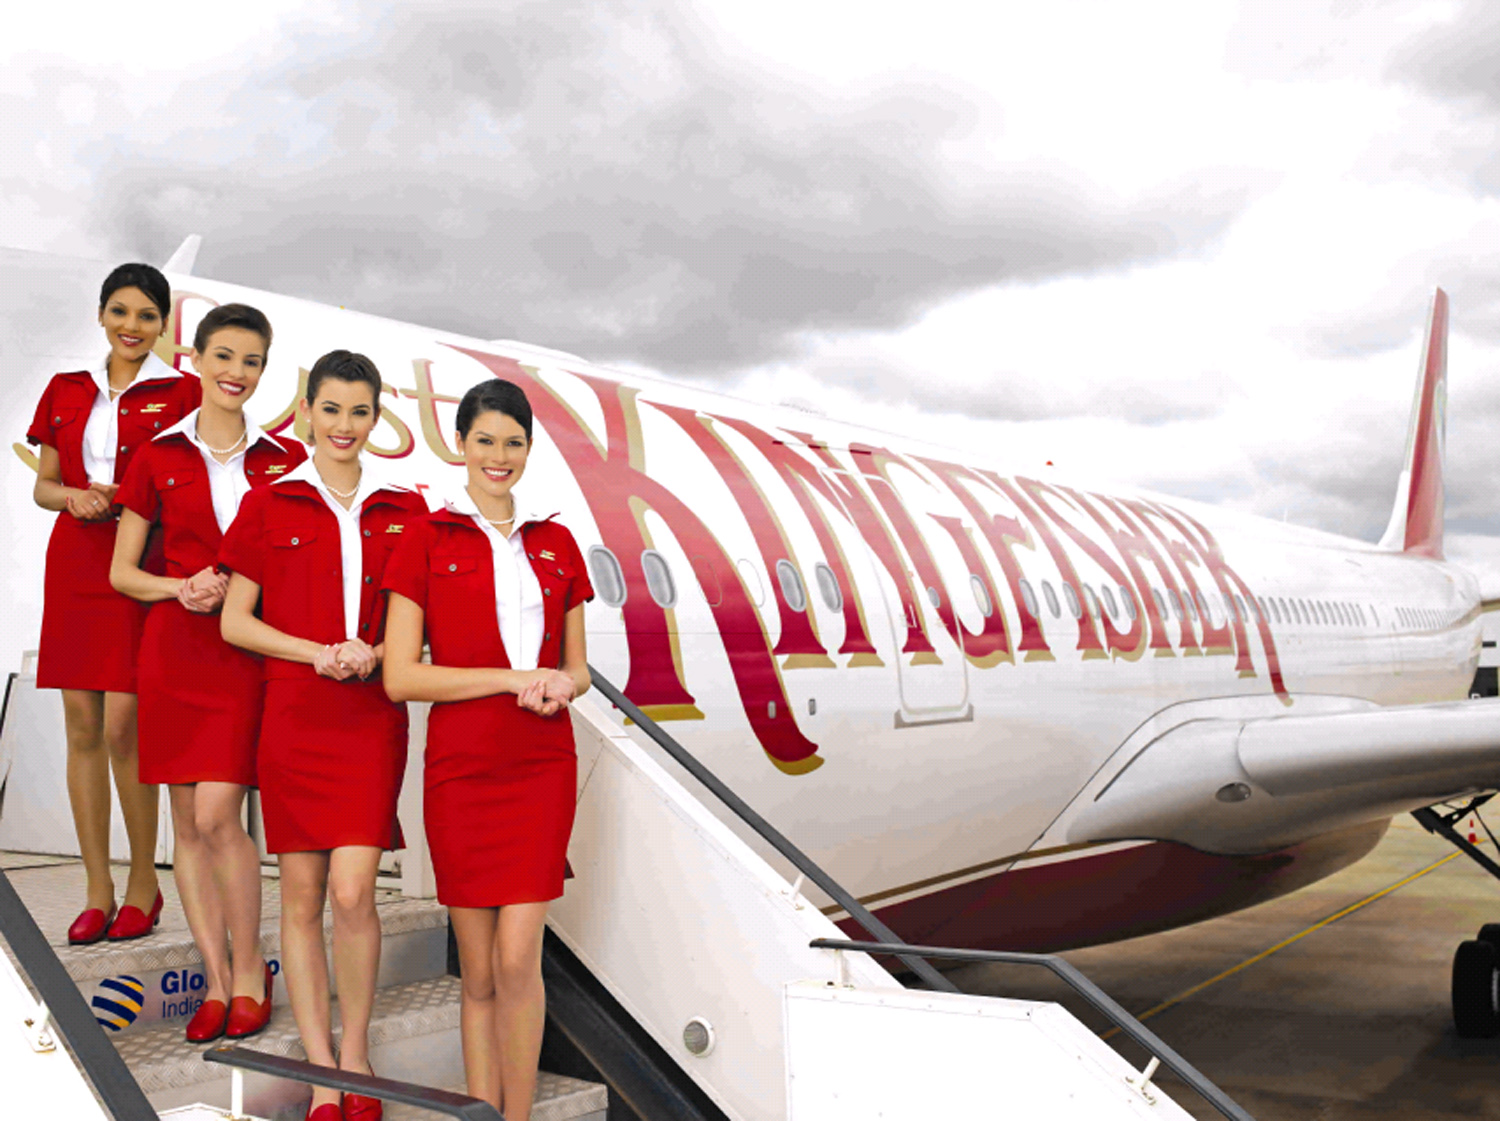 shares of vijay mallya promoted kingfisher airlineswere down 1 6 % to ...